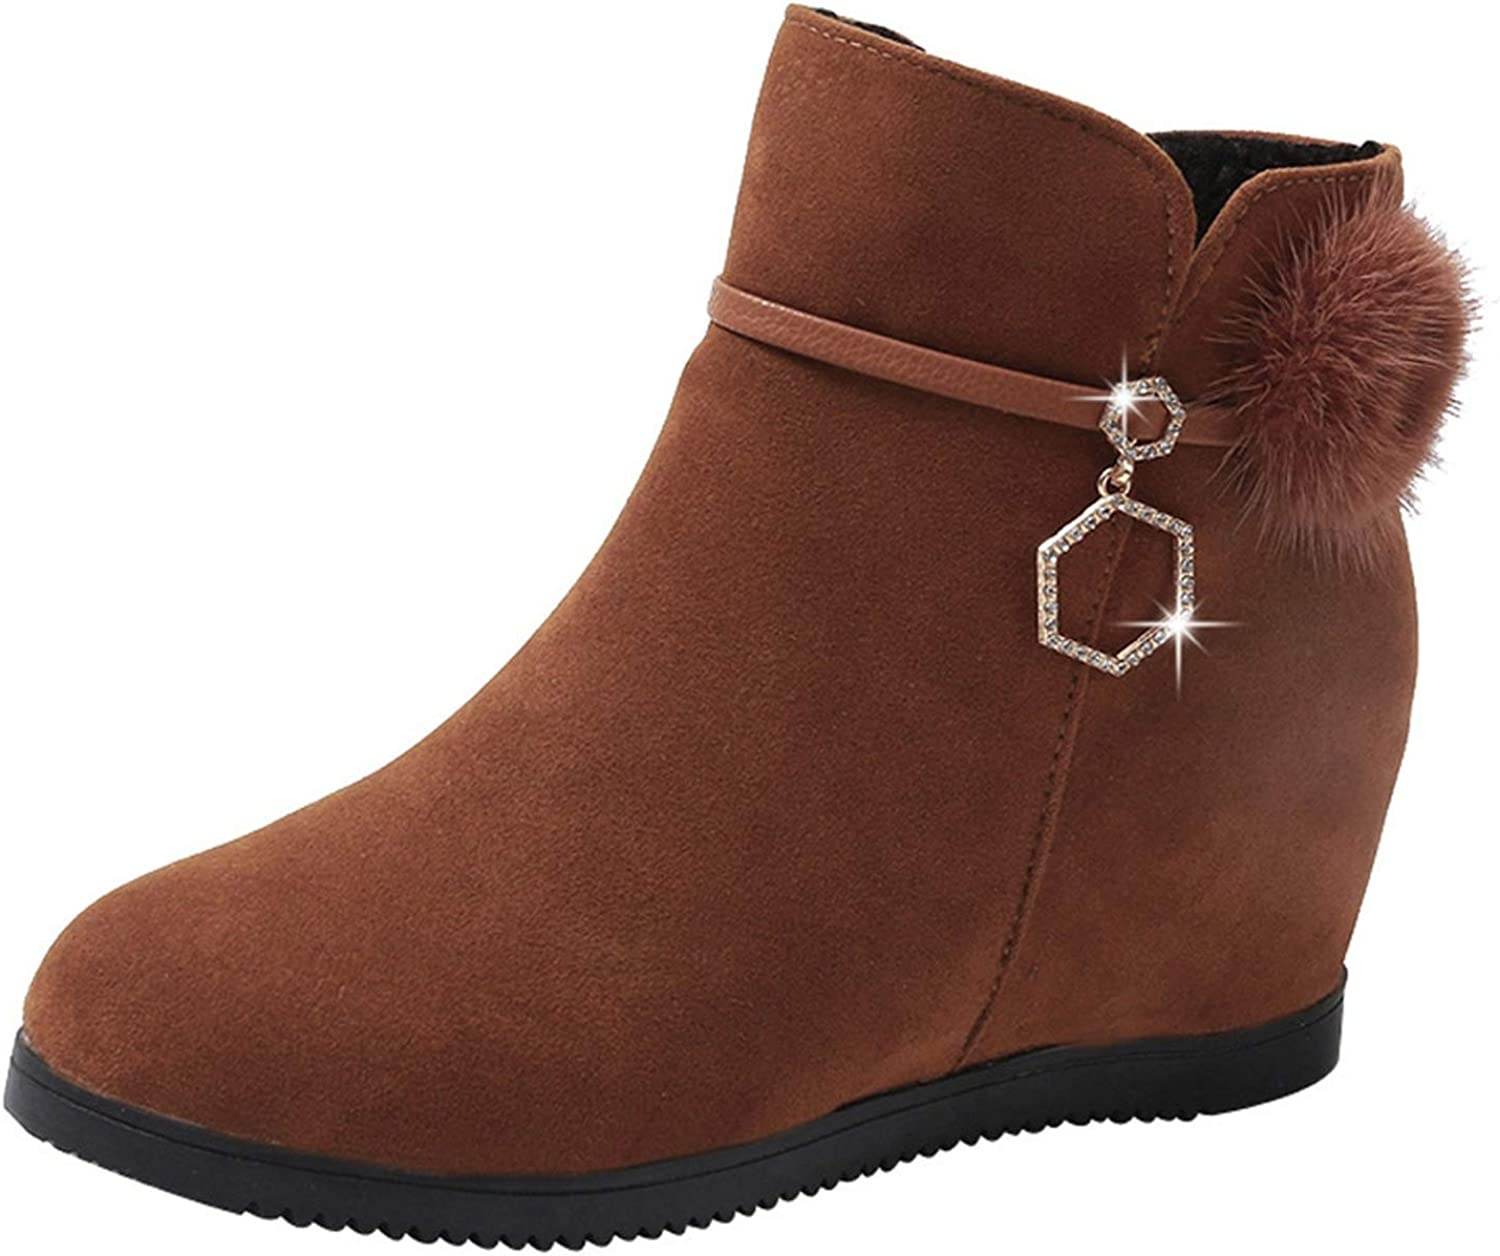 Winter Boots Ankle Boots Suede Hairball Round Toe Wedges shoes Pure Zipper Martin Boots,Brown,5.5,